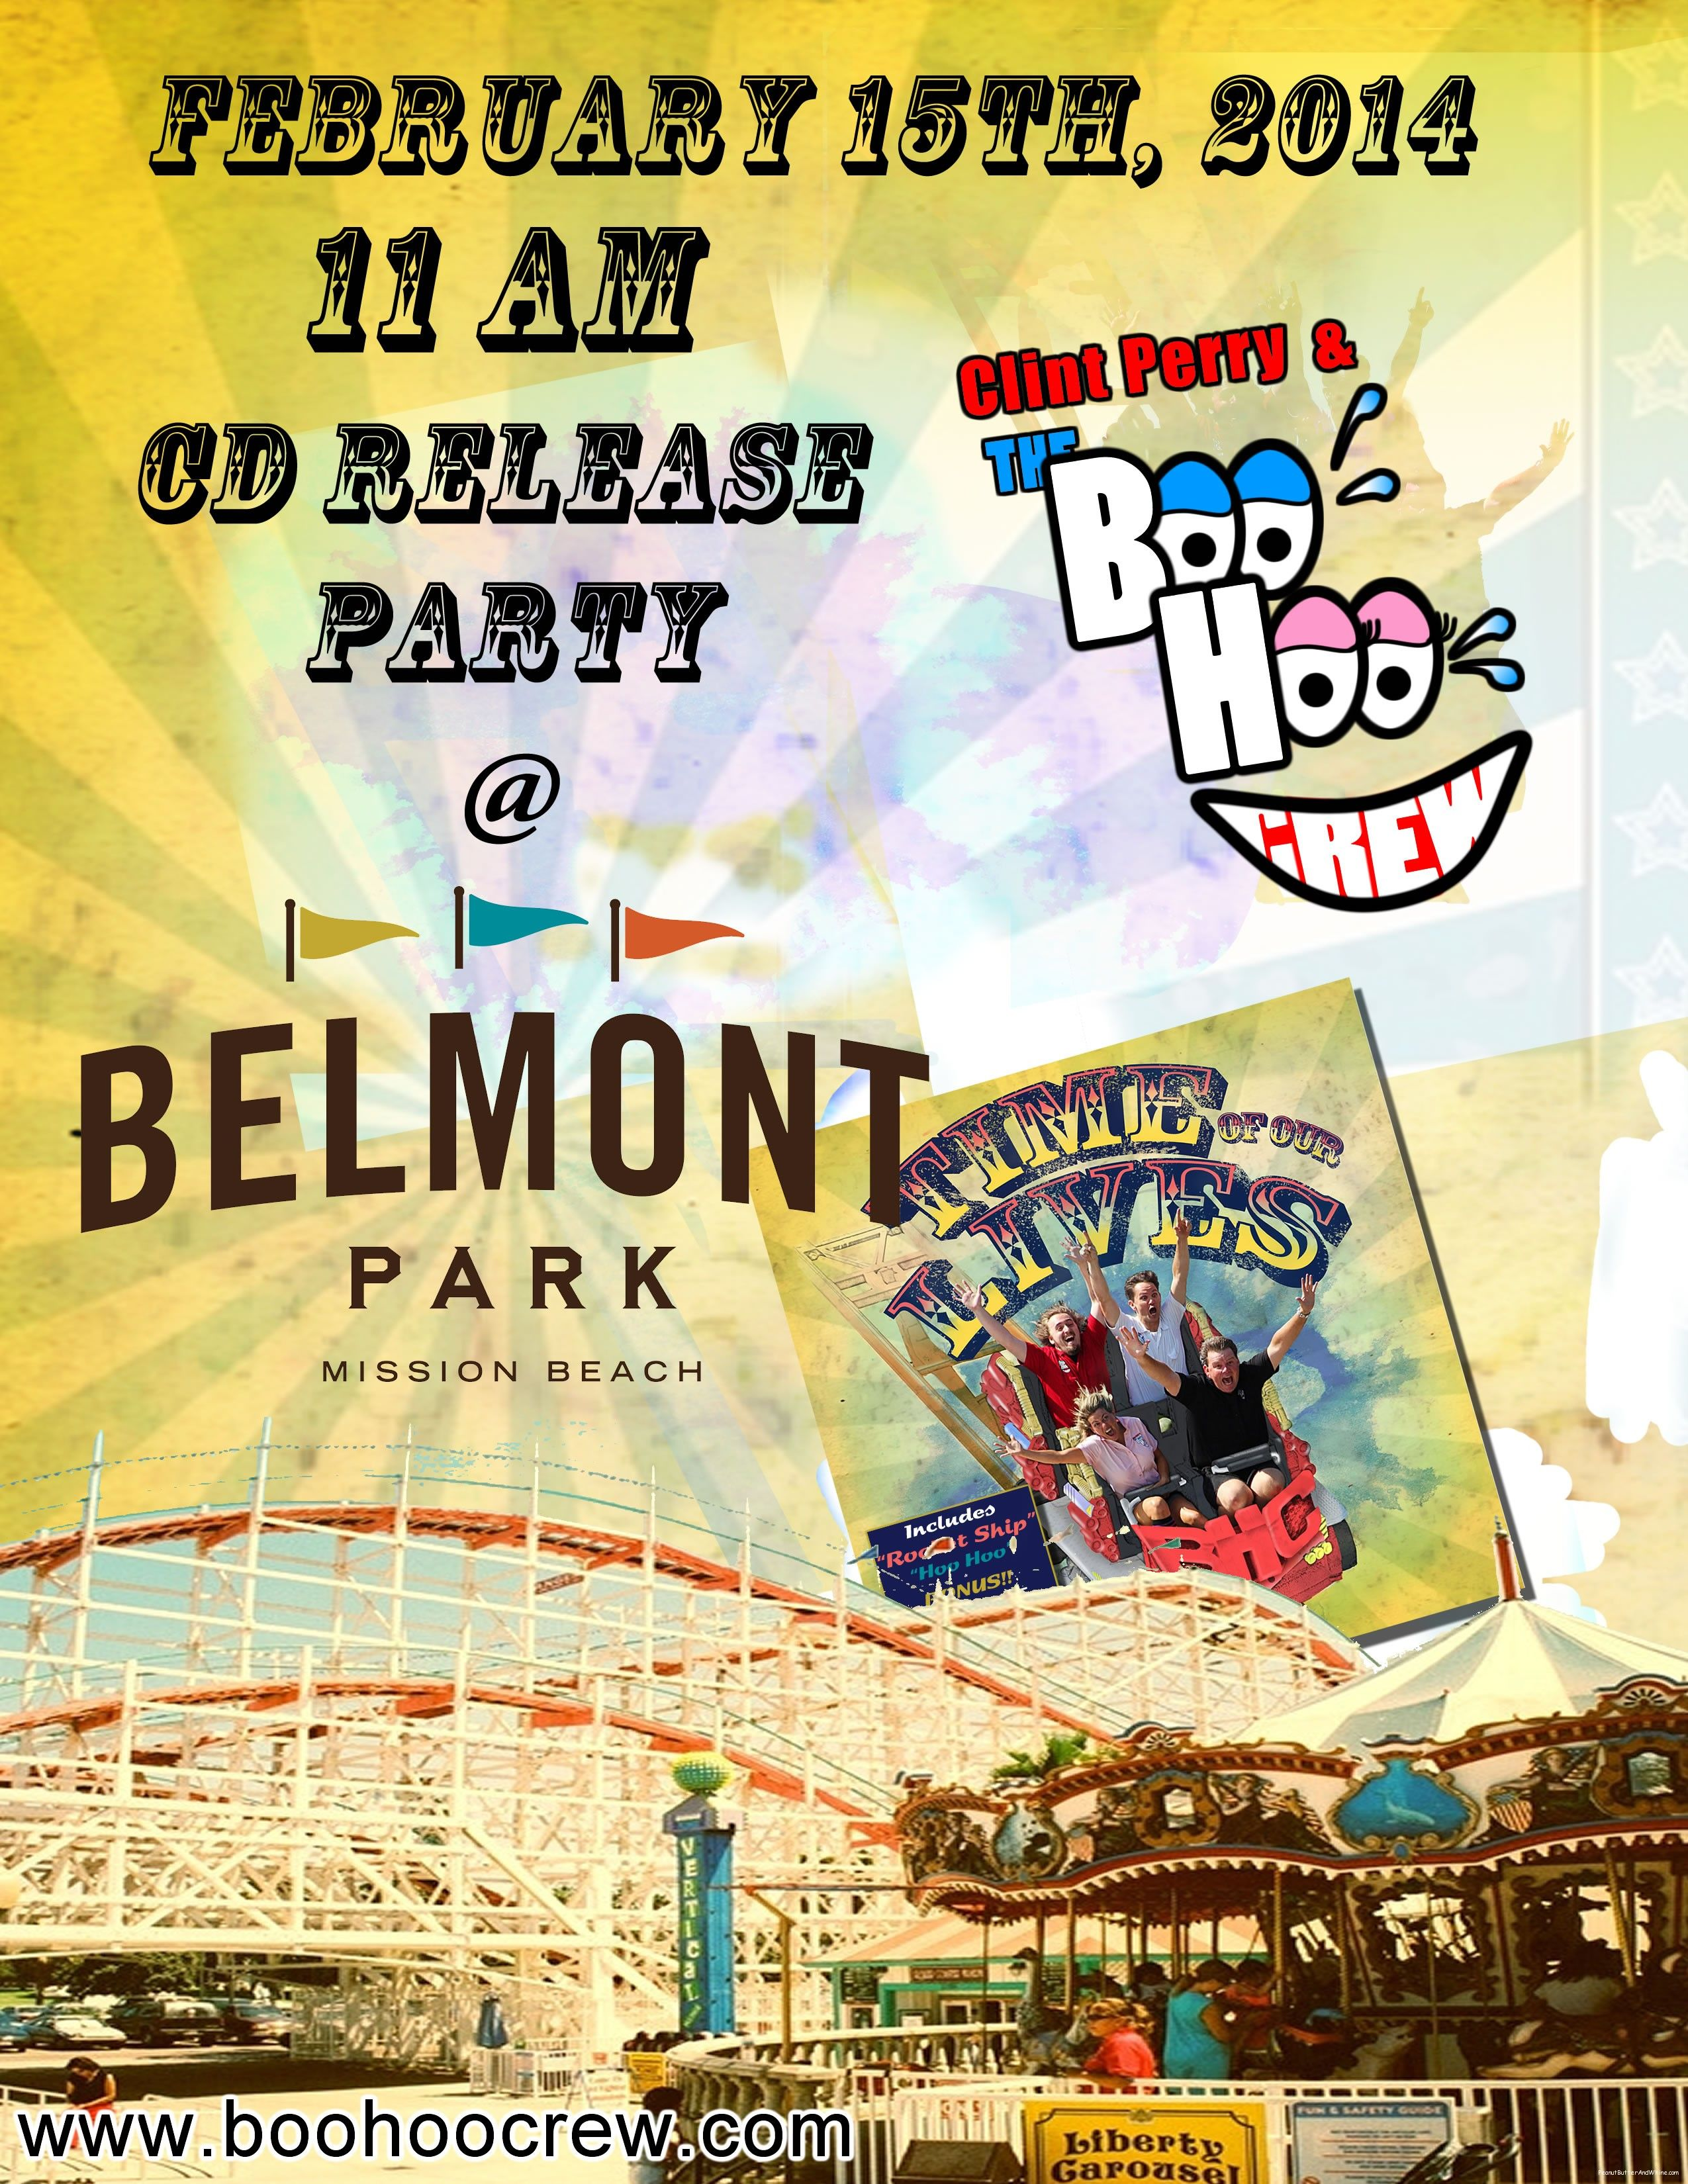 Clint Perry & The Boo Hoo Crew CD GIVEAWAY!!! -   BLOGS